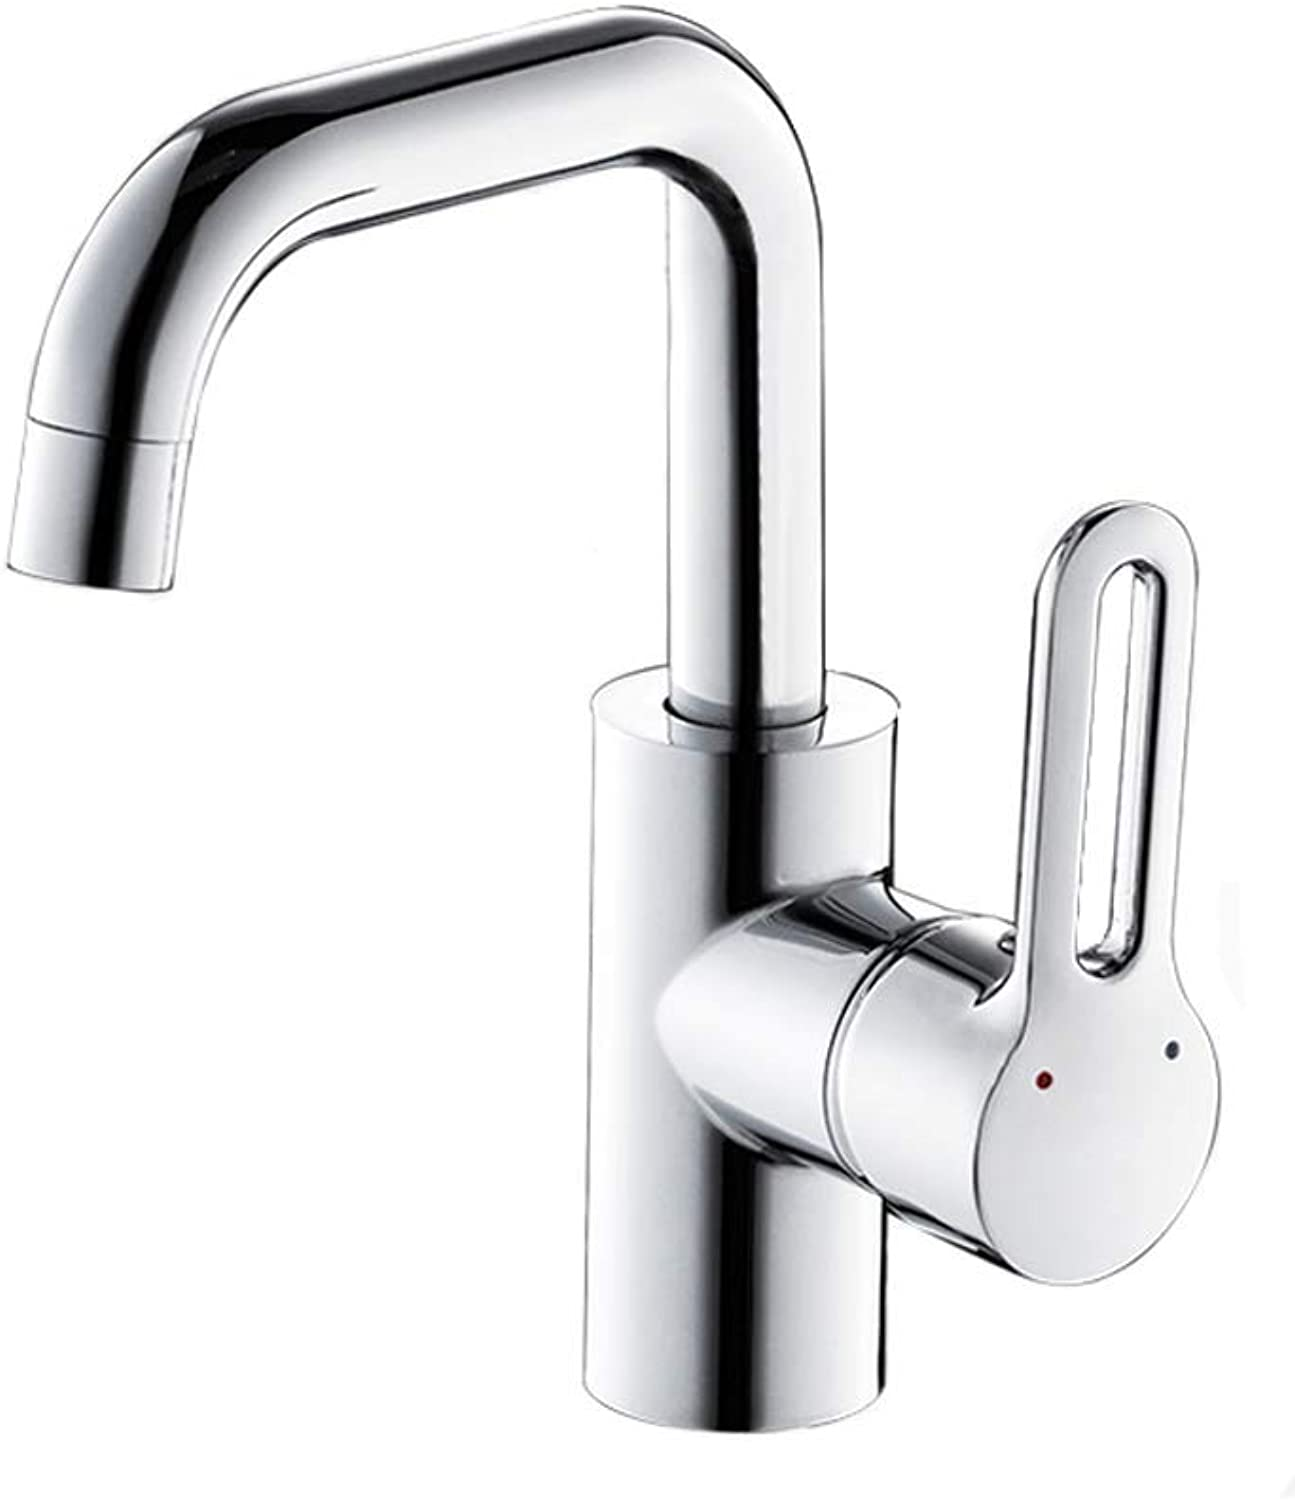 Tap Bathroom Taps, Basin Faucet Hot And Cold Faucet Washbasin Single Hole redatable Height Faucet